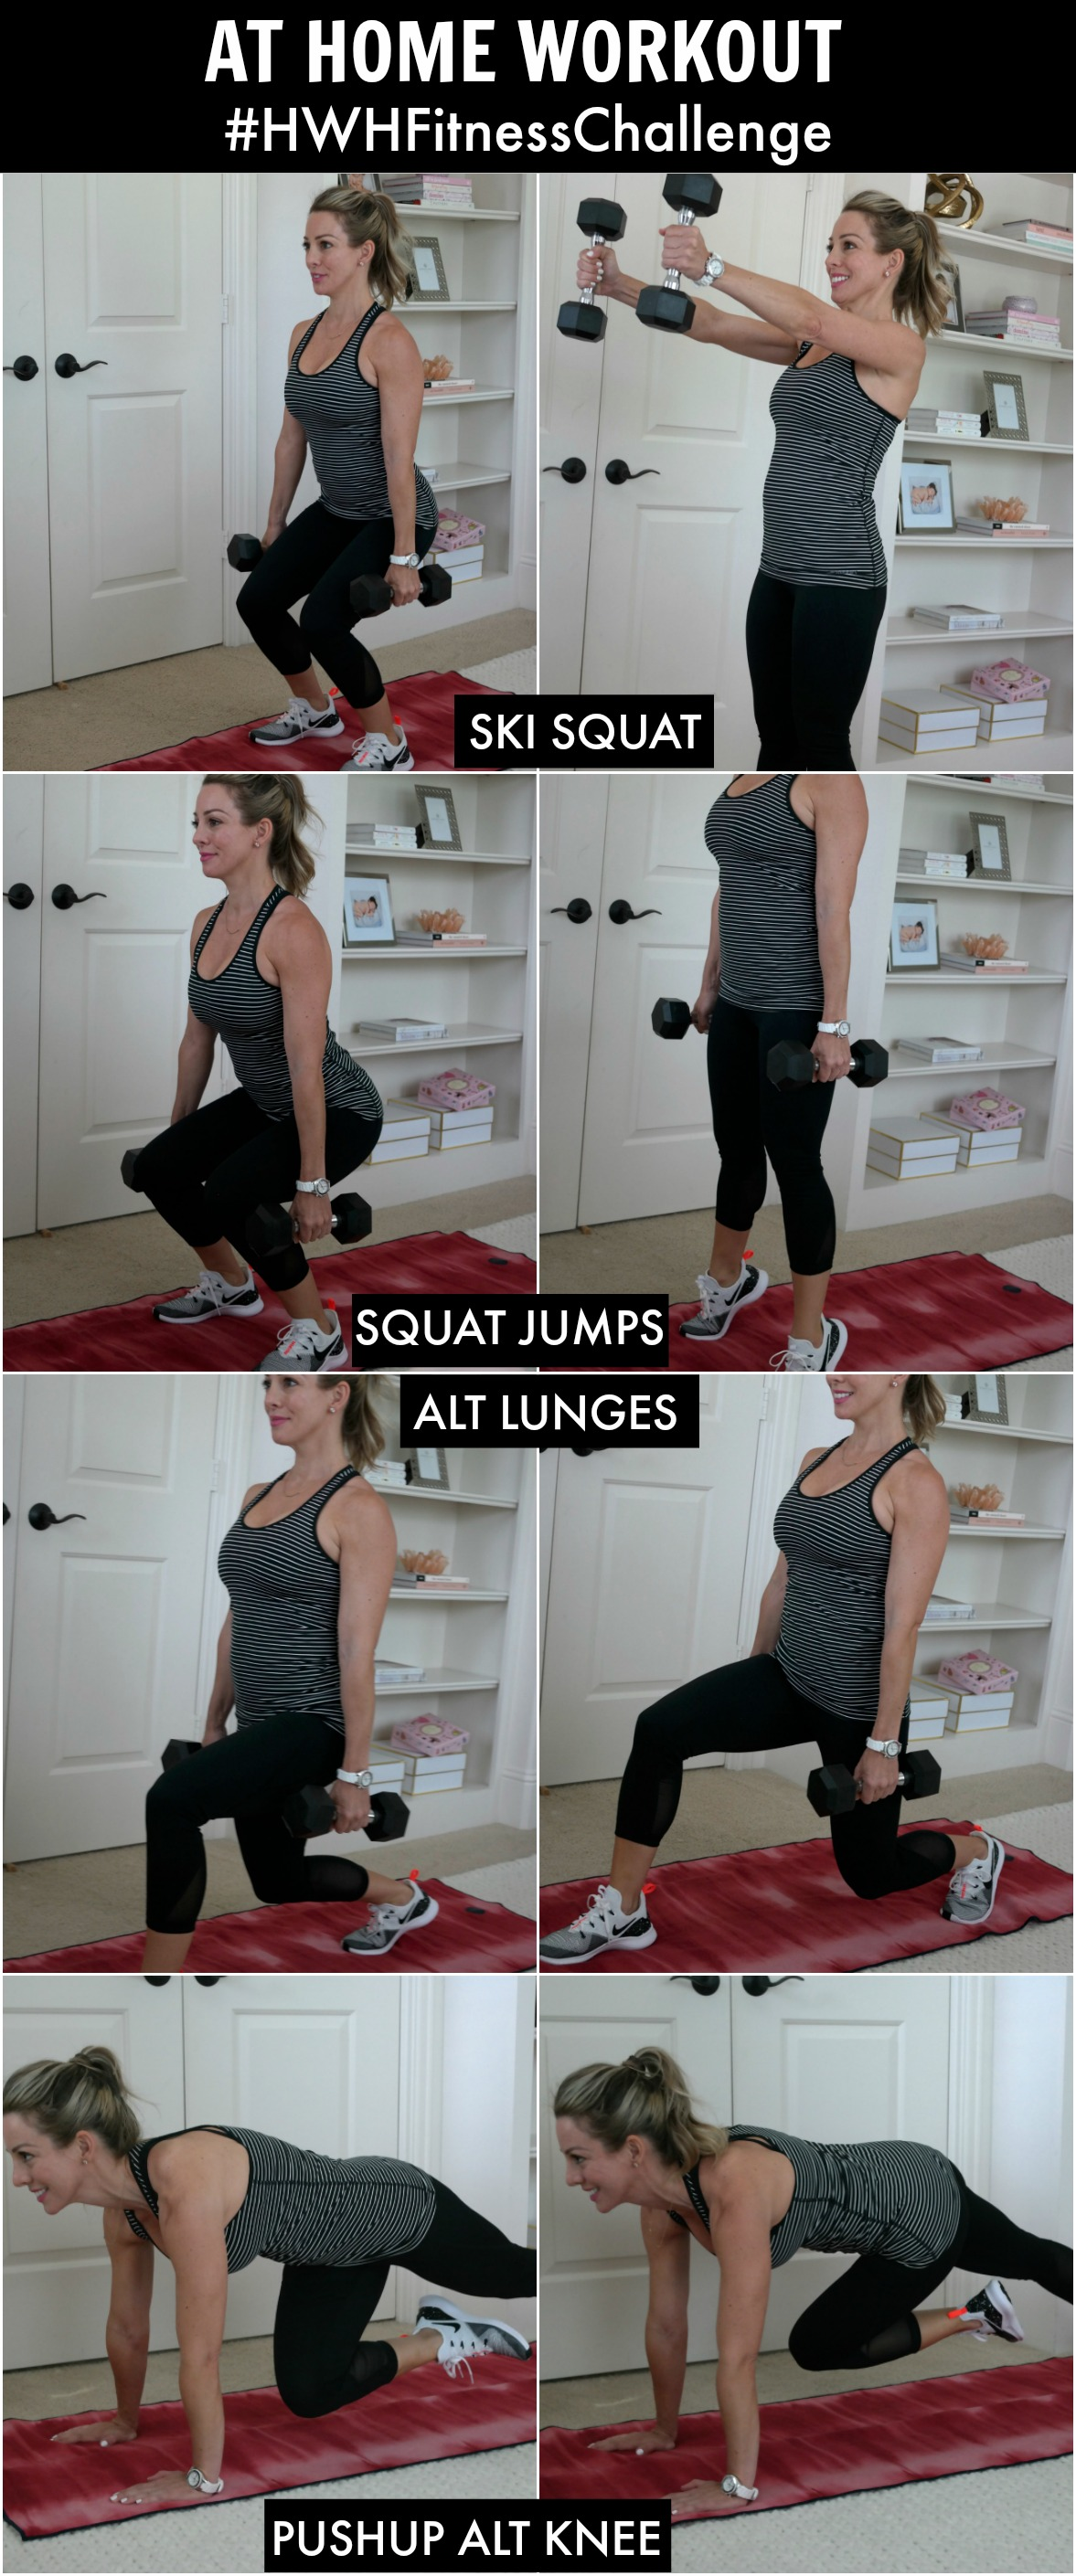 20 minute tabata workout at home